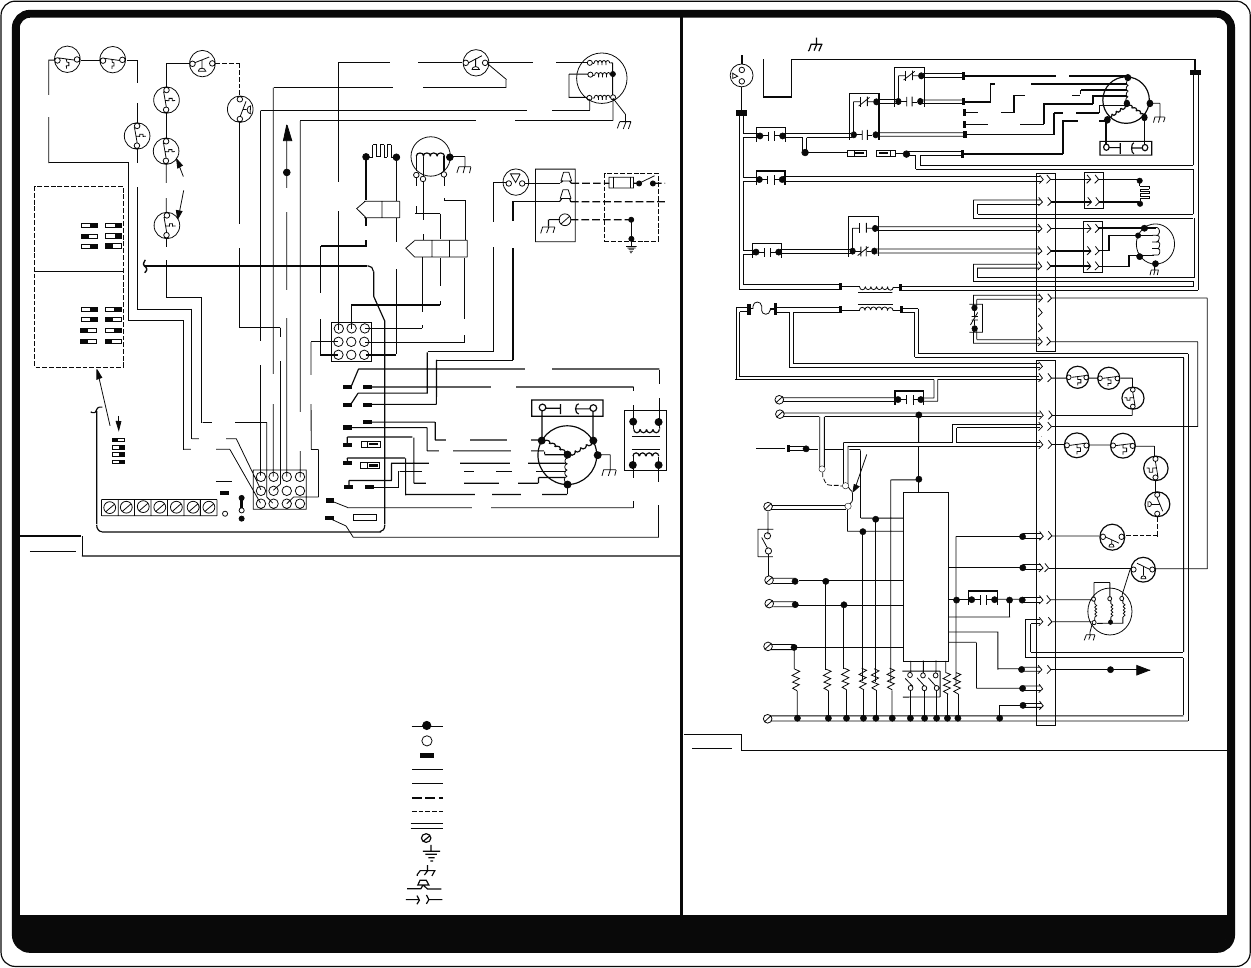 c2b73d22 c45f 43df a574 b6e707ea0cc7 bg8 bryant furnace diagram 100 images bryant gas heater wiring bryant air conditioner wiring diagram at fashall.co